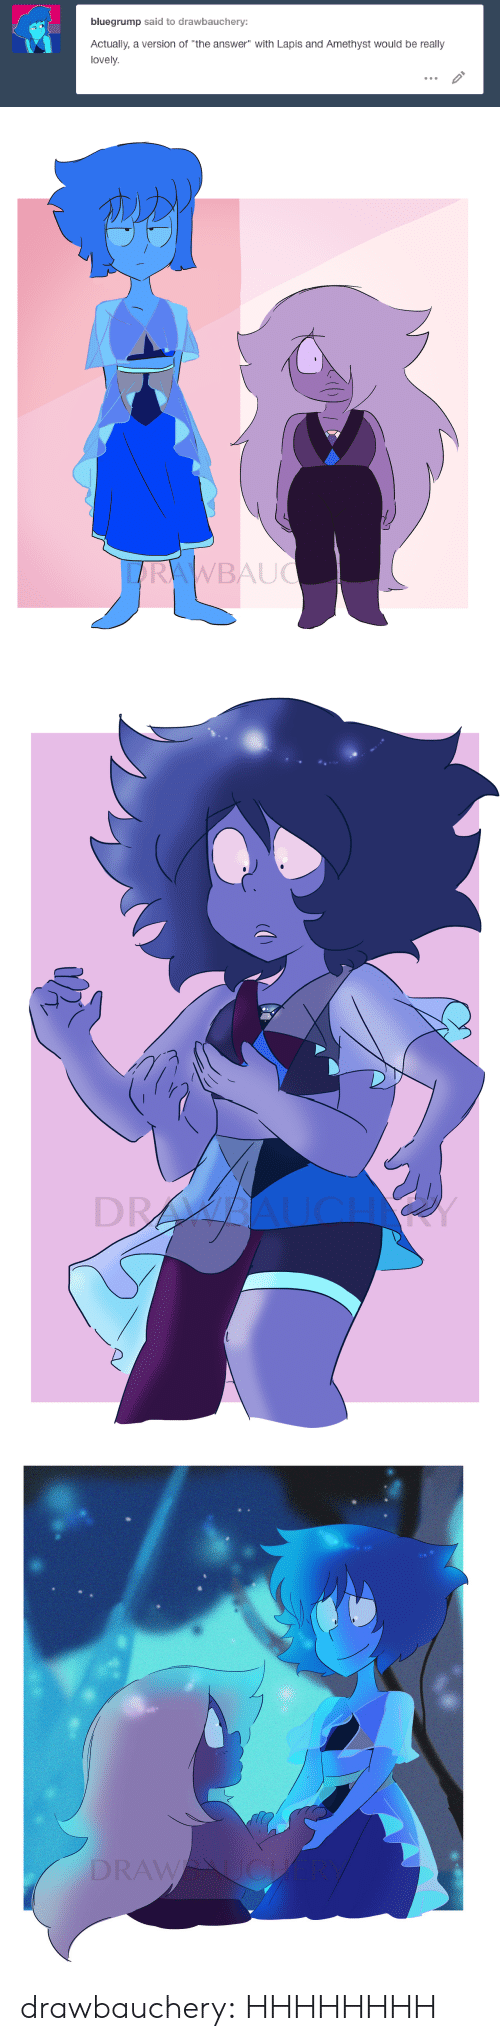 """Tumblr, Amethyst, and Blog: bluegrump said to drawbauchery:  Actually, a version of """"the answer"""" with Lapis and Amethyst would be really  lovely.   LARAWBAUC   DR   DRAWU  JCH drawbauchery:  HHHHHHHH"""